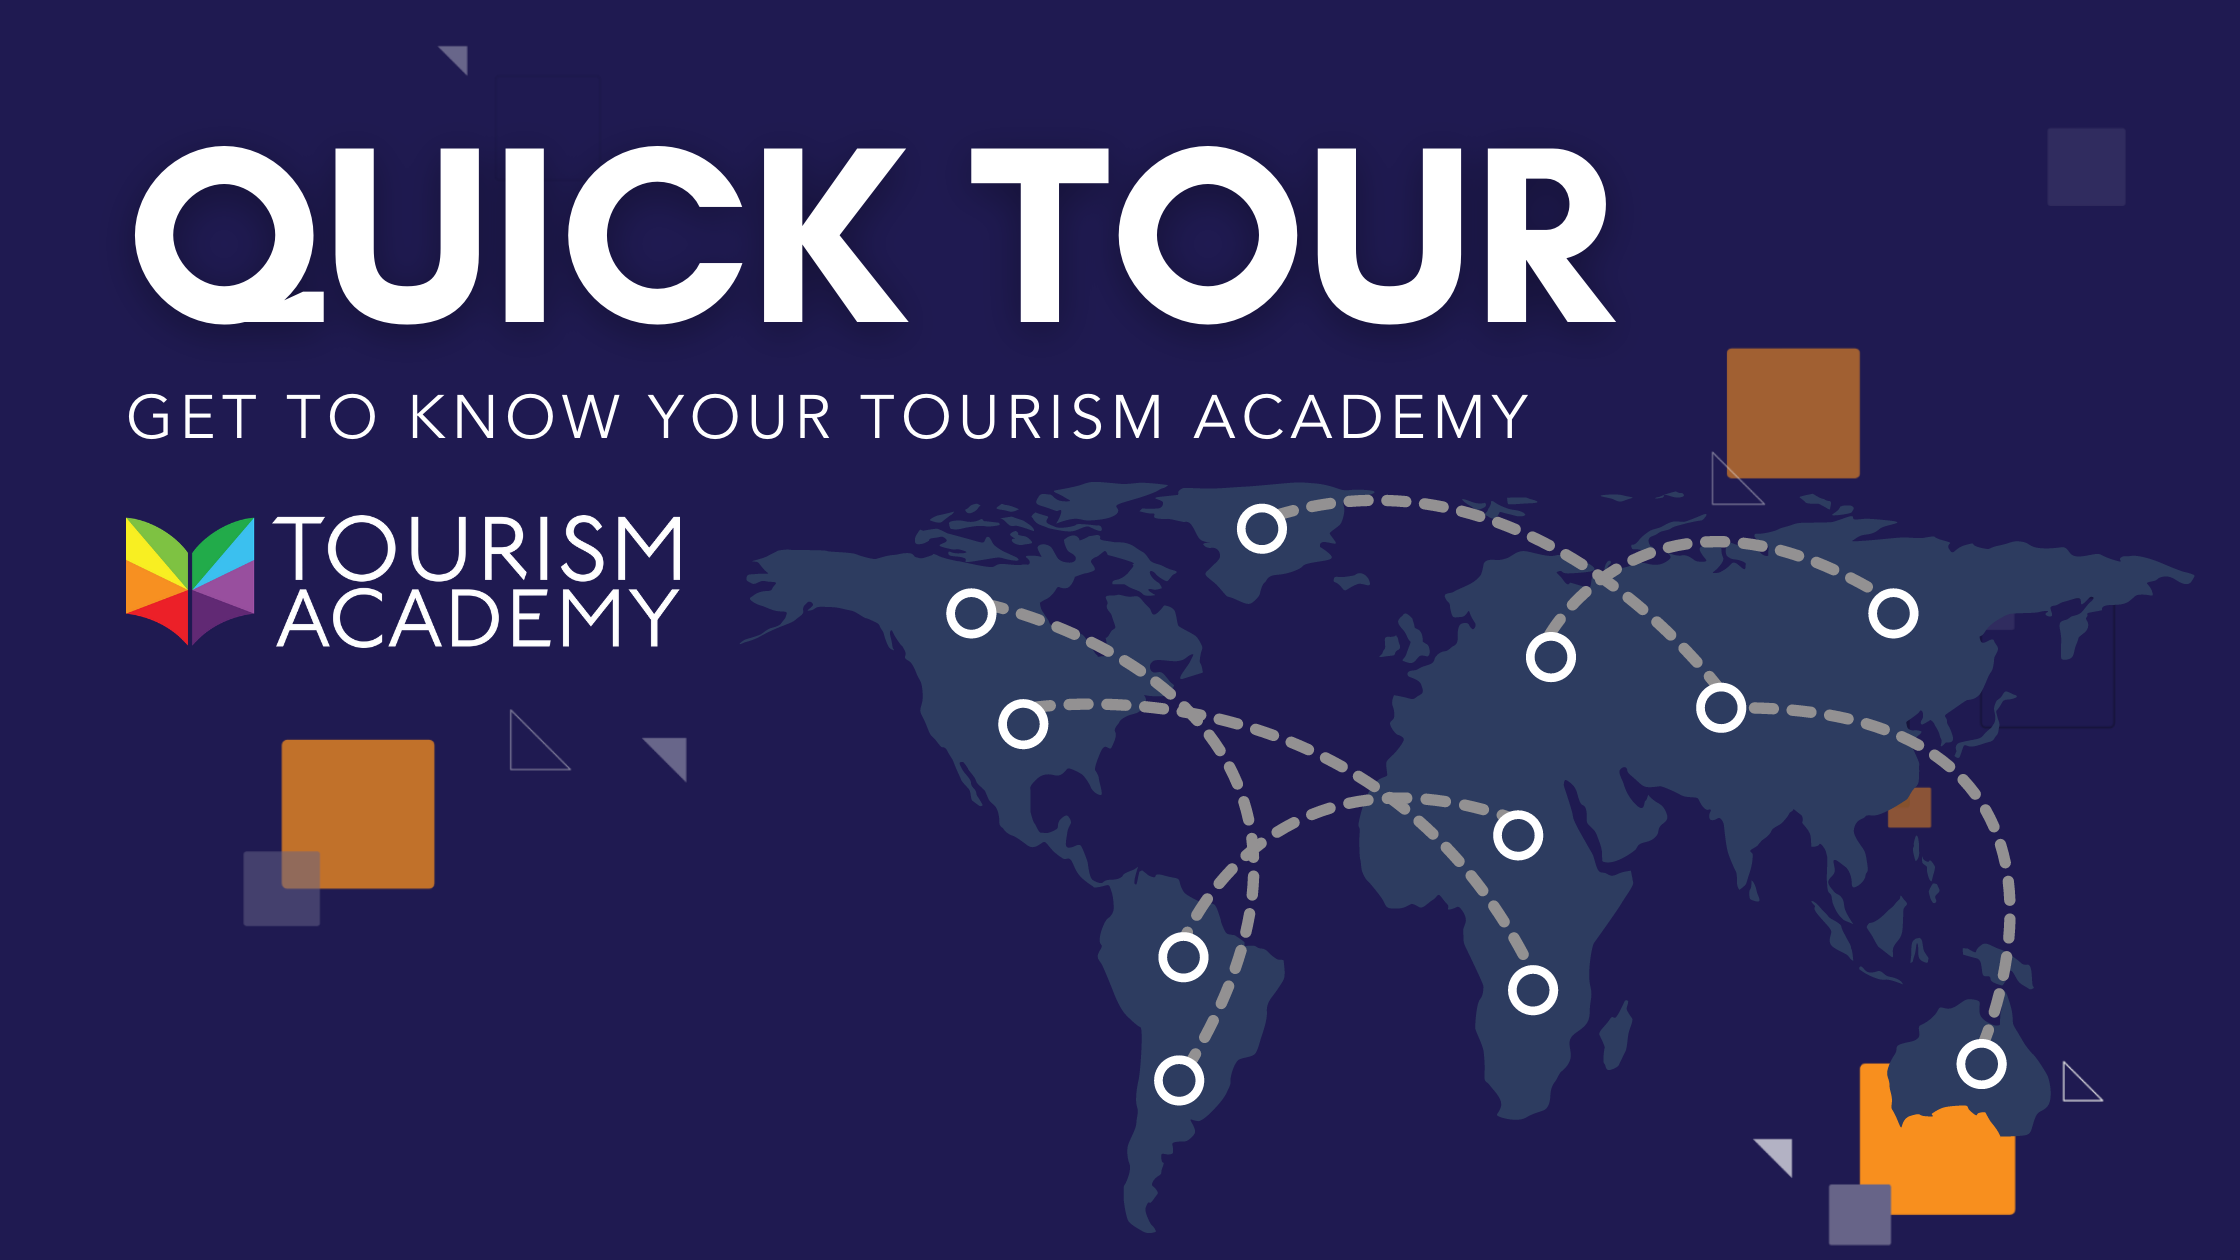 tourism academy tour quick get to know how does it work